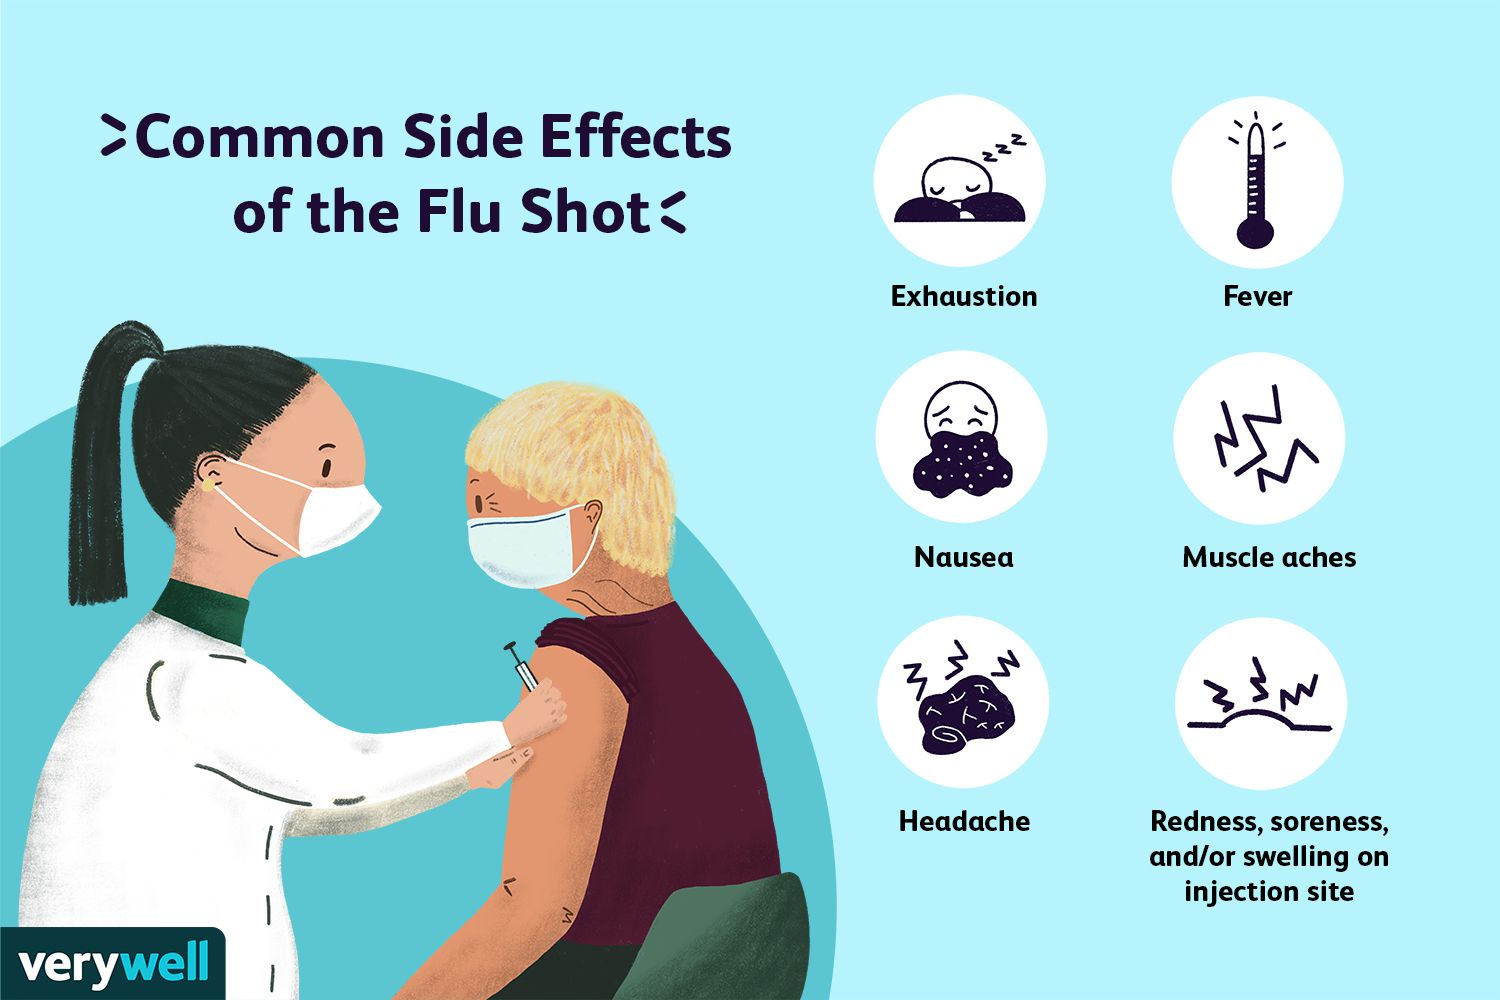 Common Side Effects of the Flu Shot